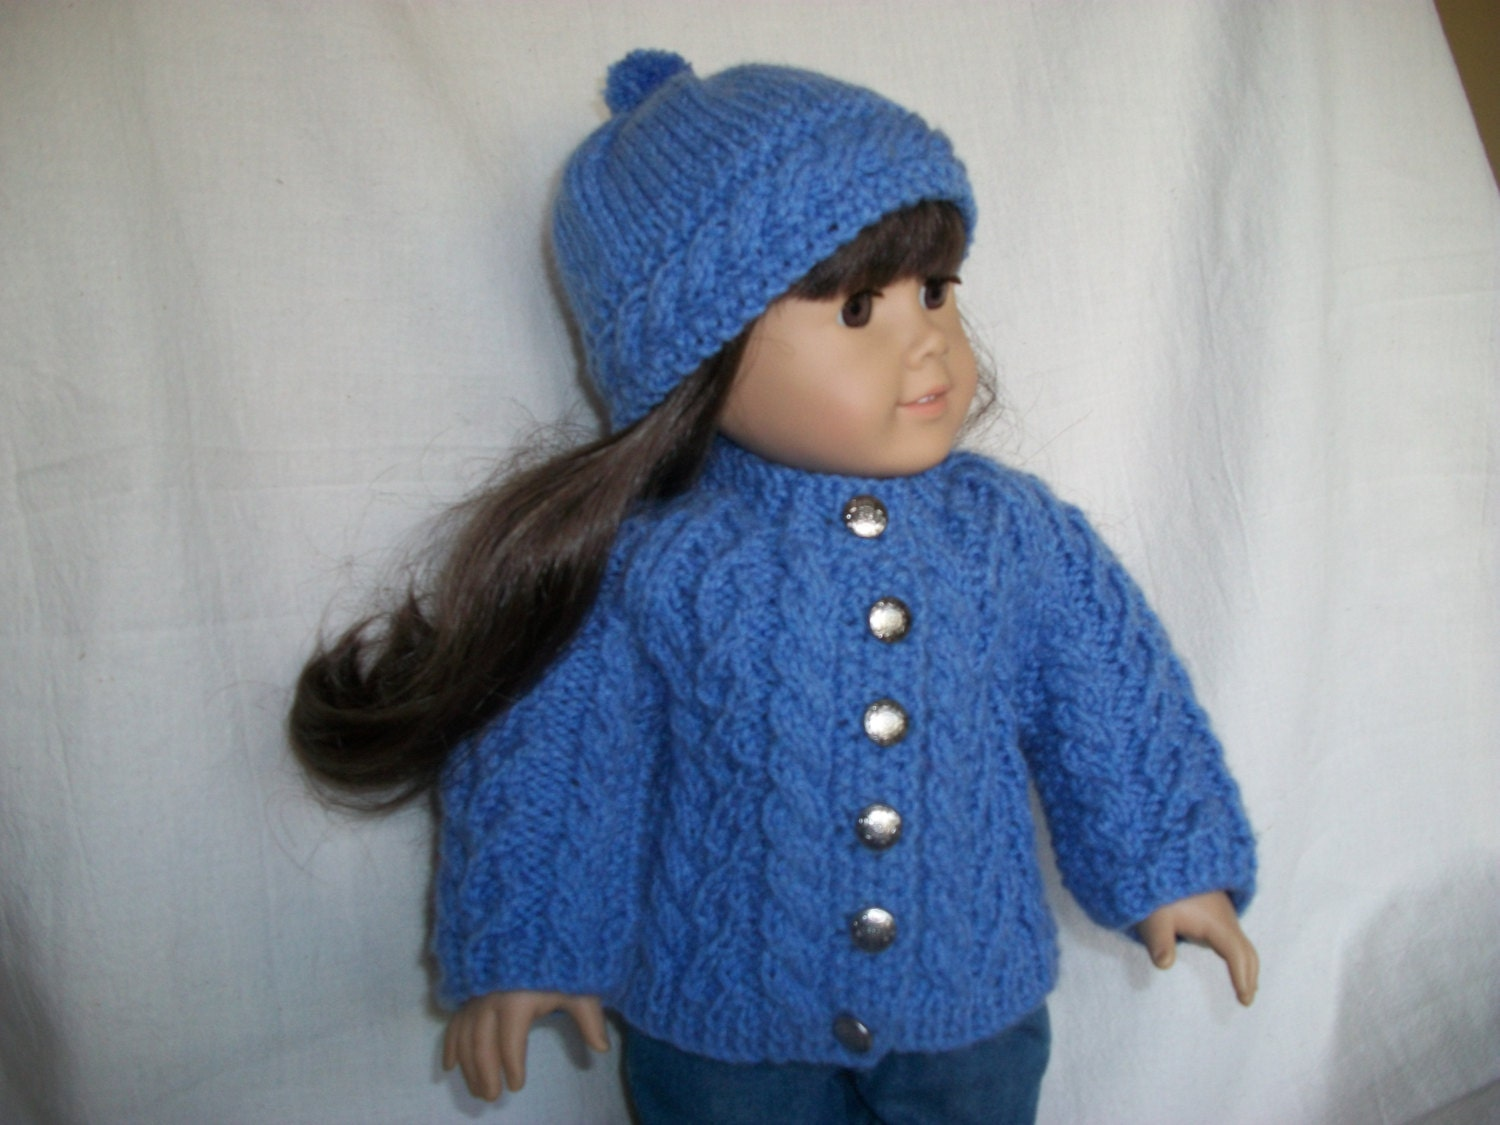 Knitting Pattern Doll Cardigan : 18 inch Doll Knitting Pattern All Over Cable Raglan Cardigan